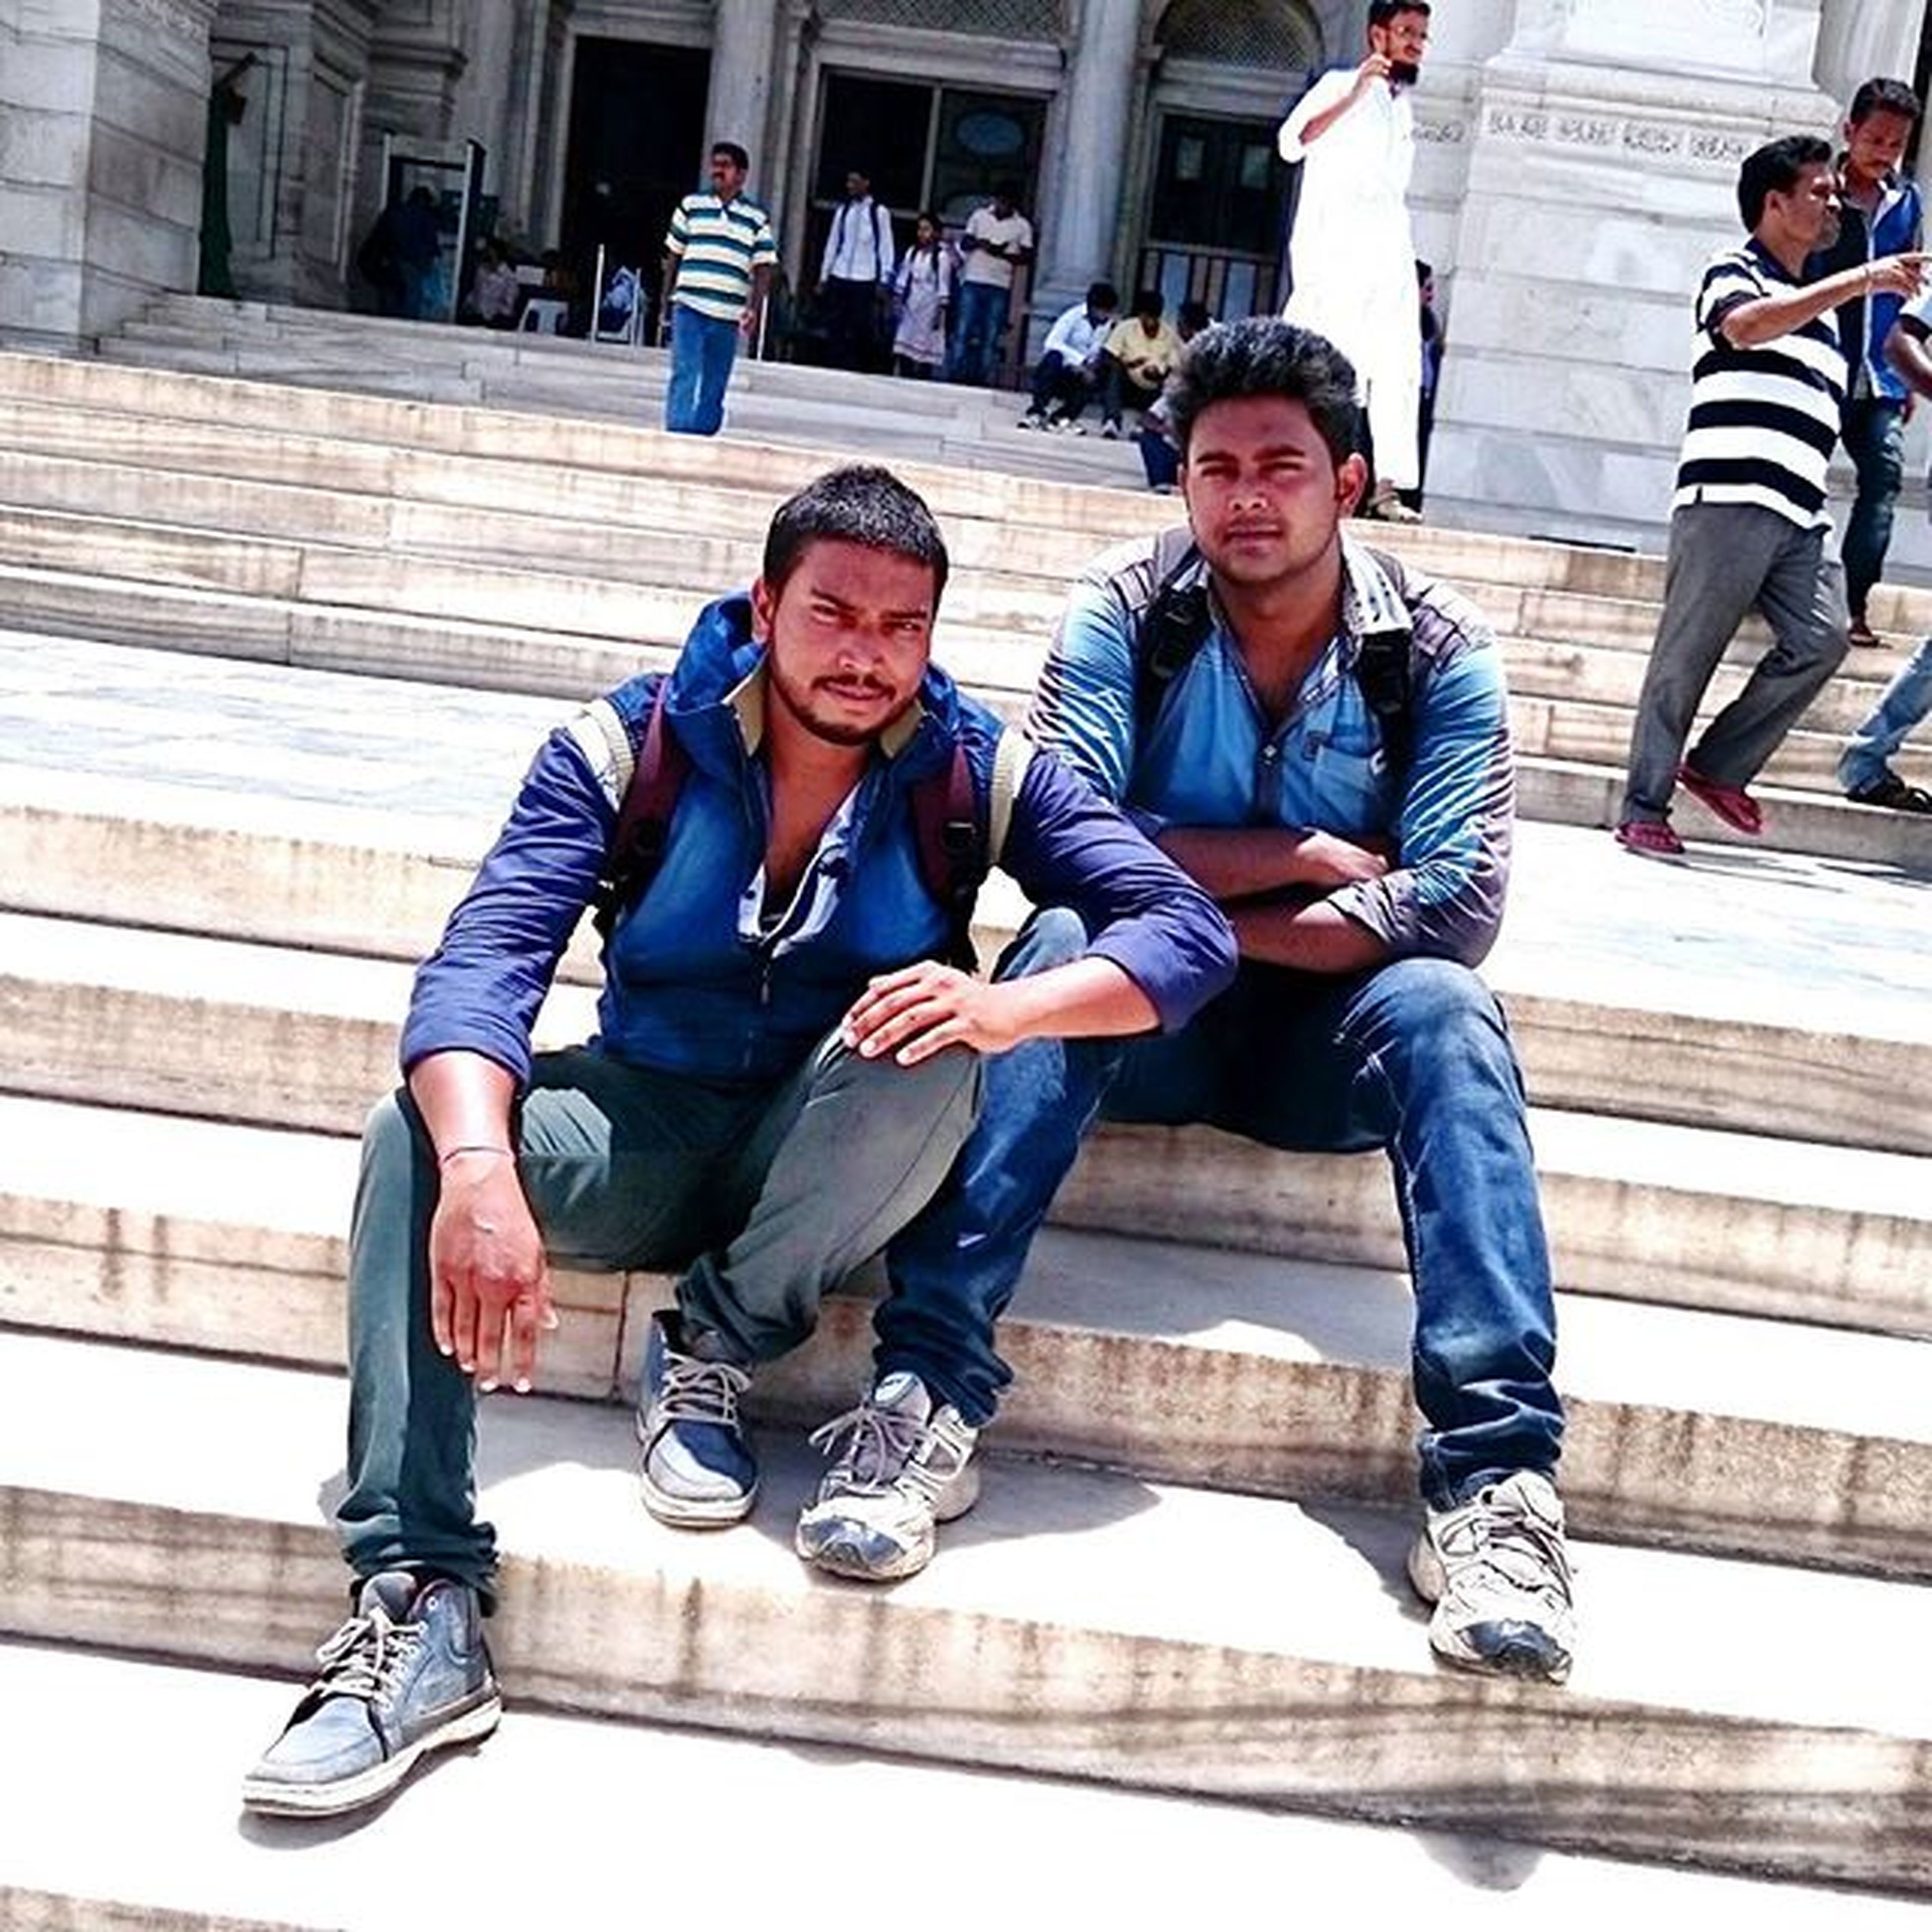 lifestyles, young adult, casual clothing, leisure activity, person, young men, full length, portrait, togetherness, looking at camera, front view, happiness, smiling, standing, bonding, mid adult men